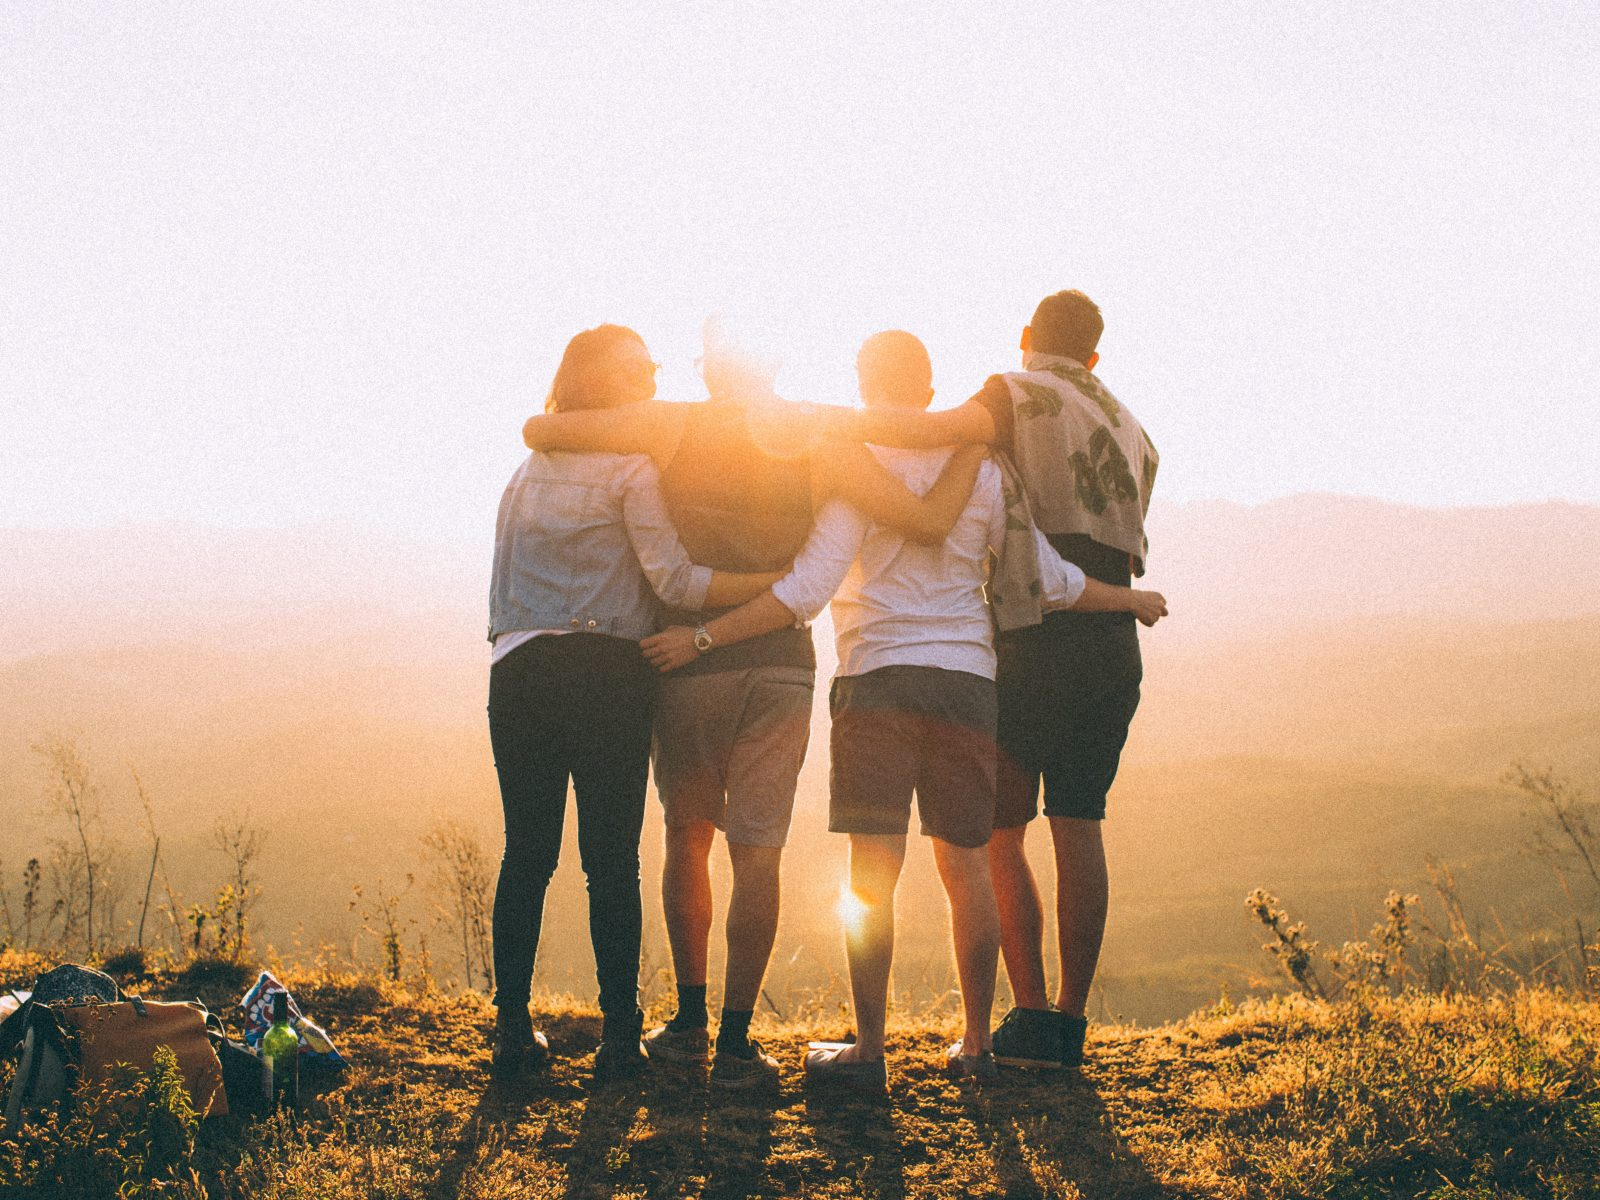 Group of people embracing in a NSW national park